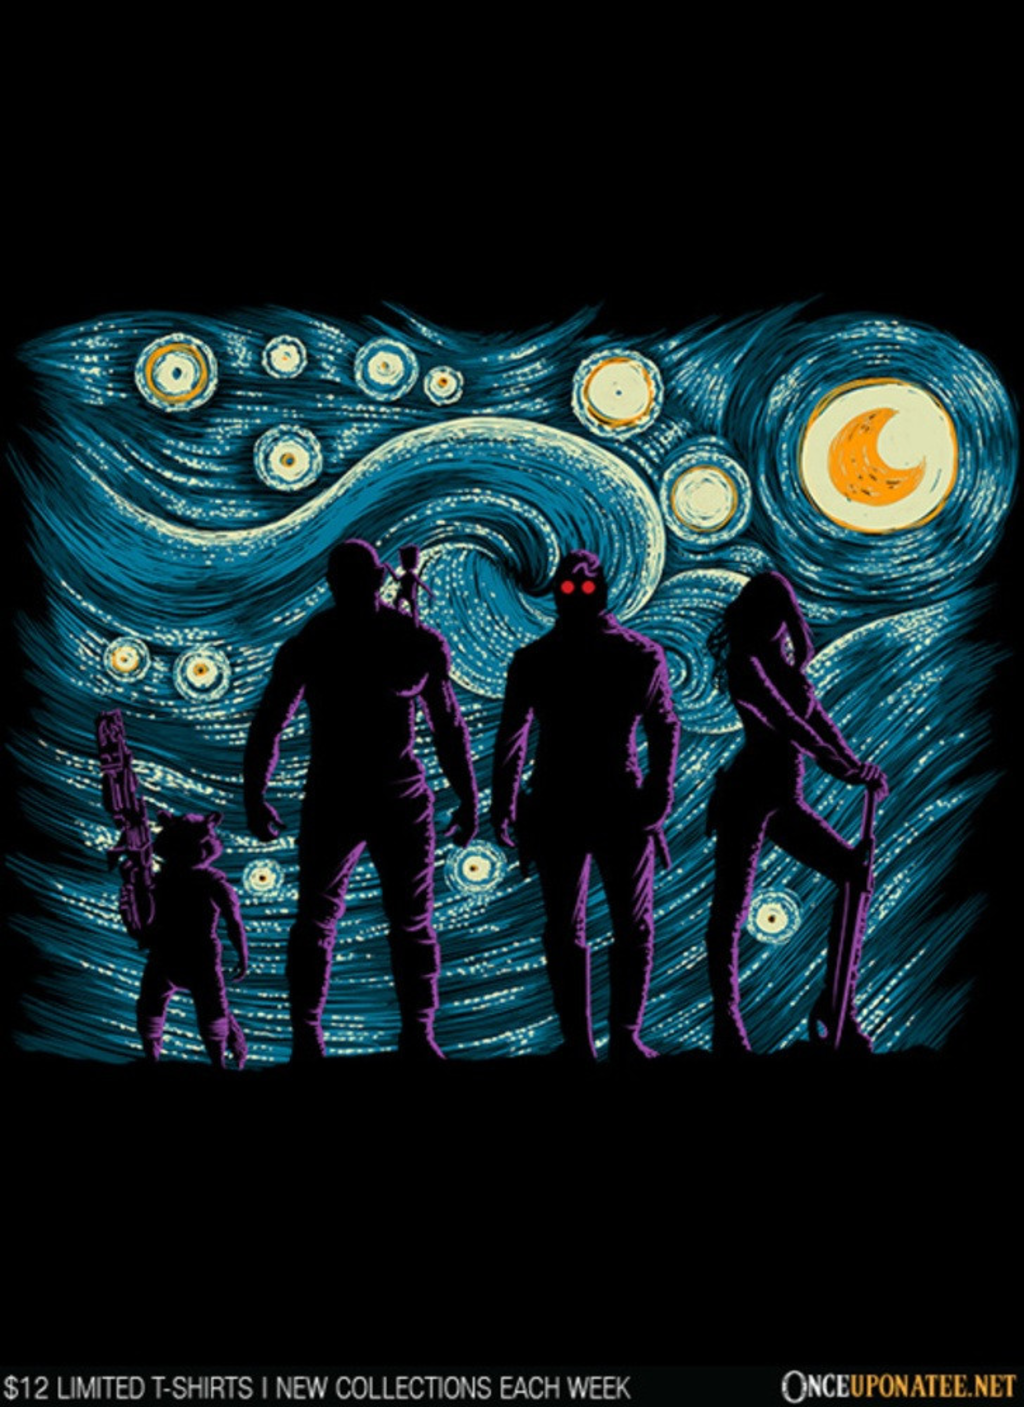 Once Upon a Tee: Starry Galaxy